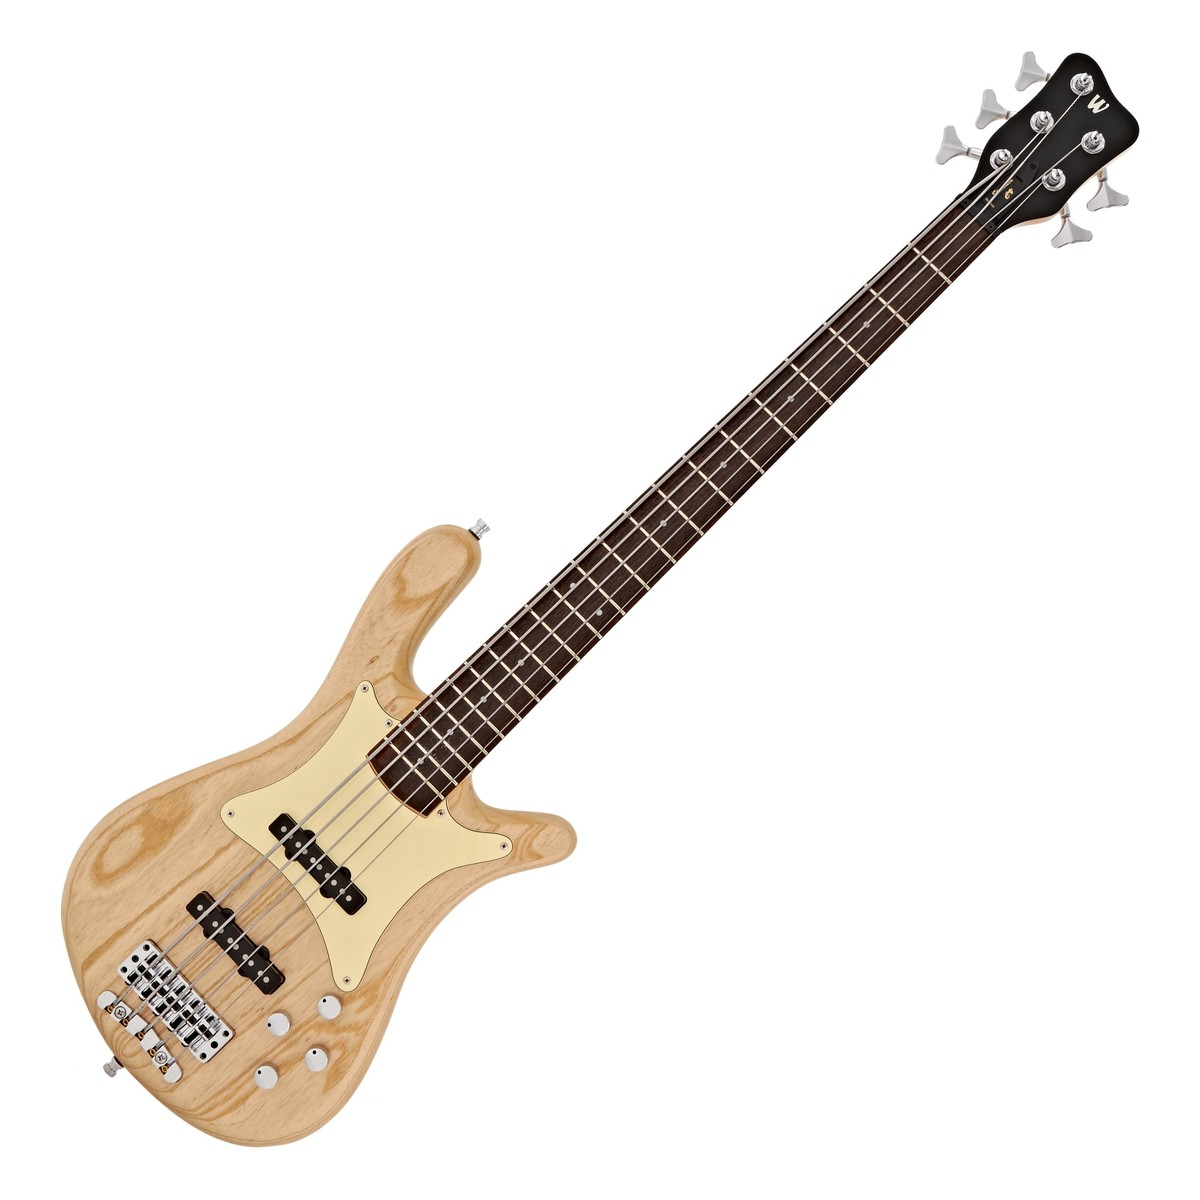 warwick gps streamer cv passive 5 string bass 2015  natural satin at gear4music